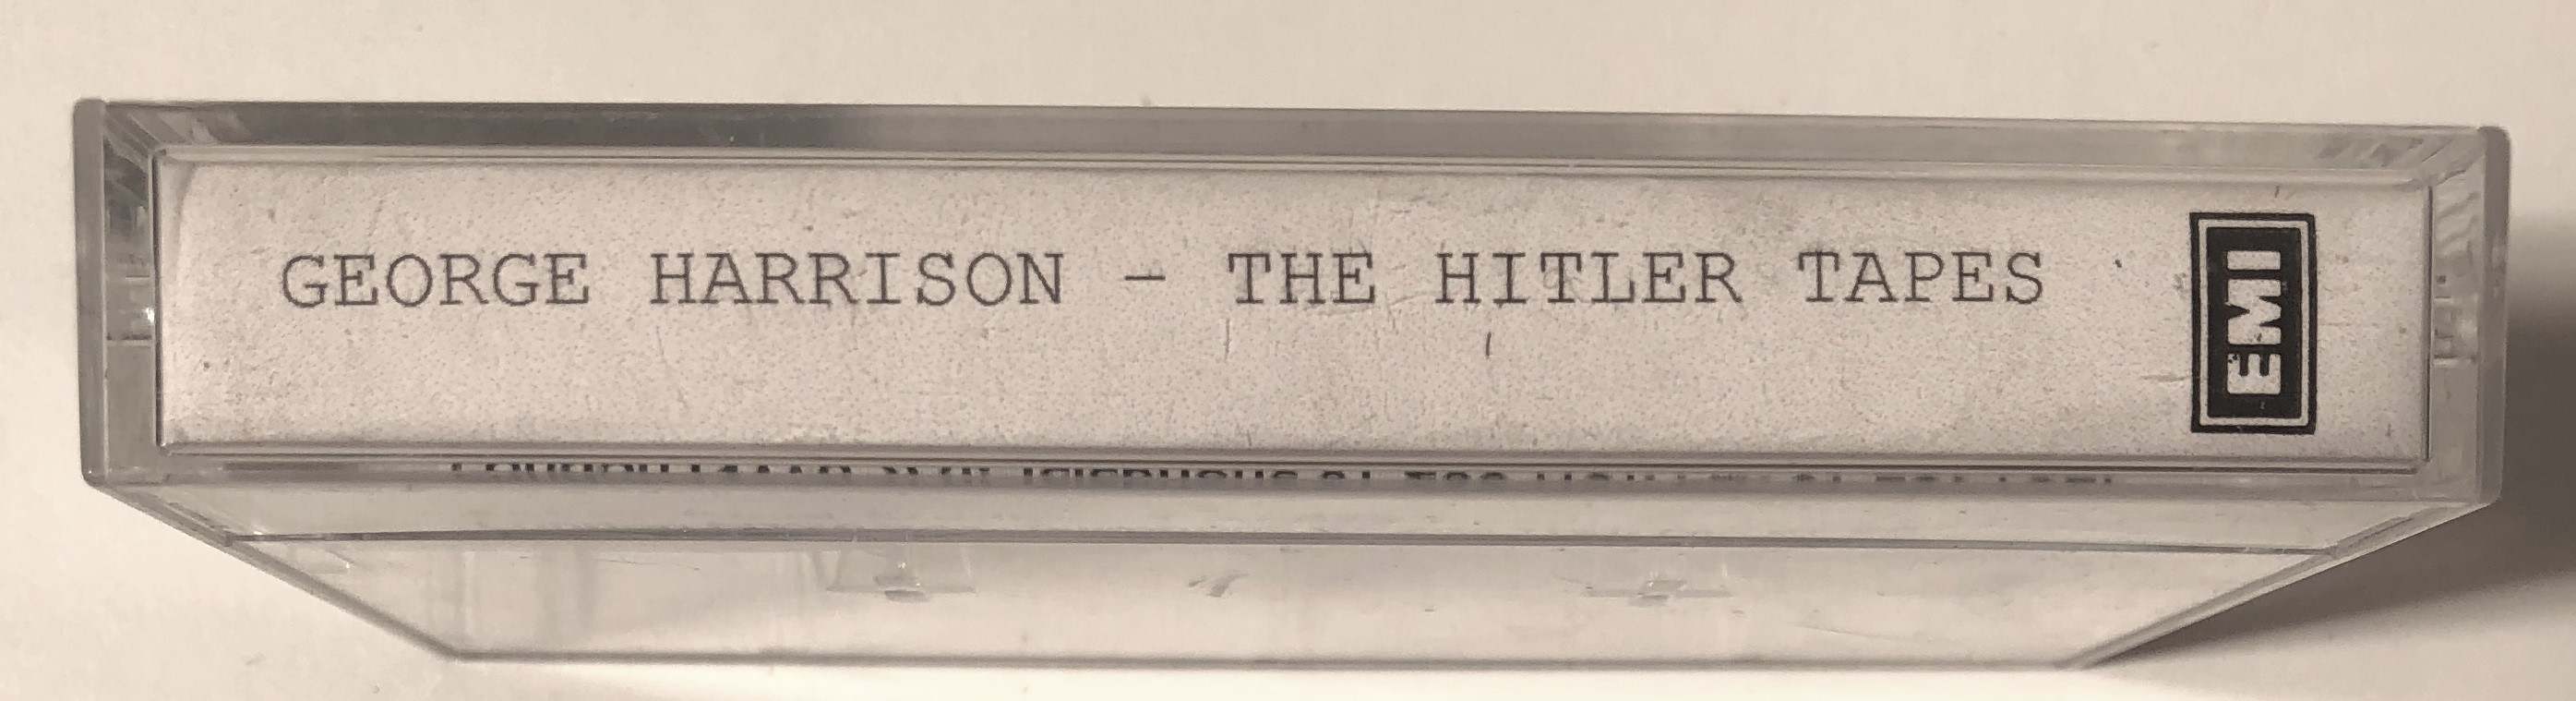 George Harrison's tape